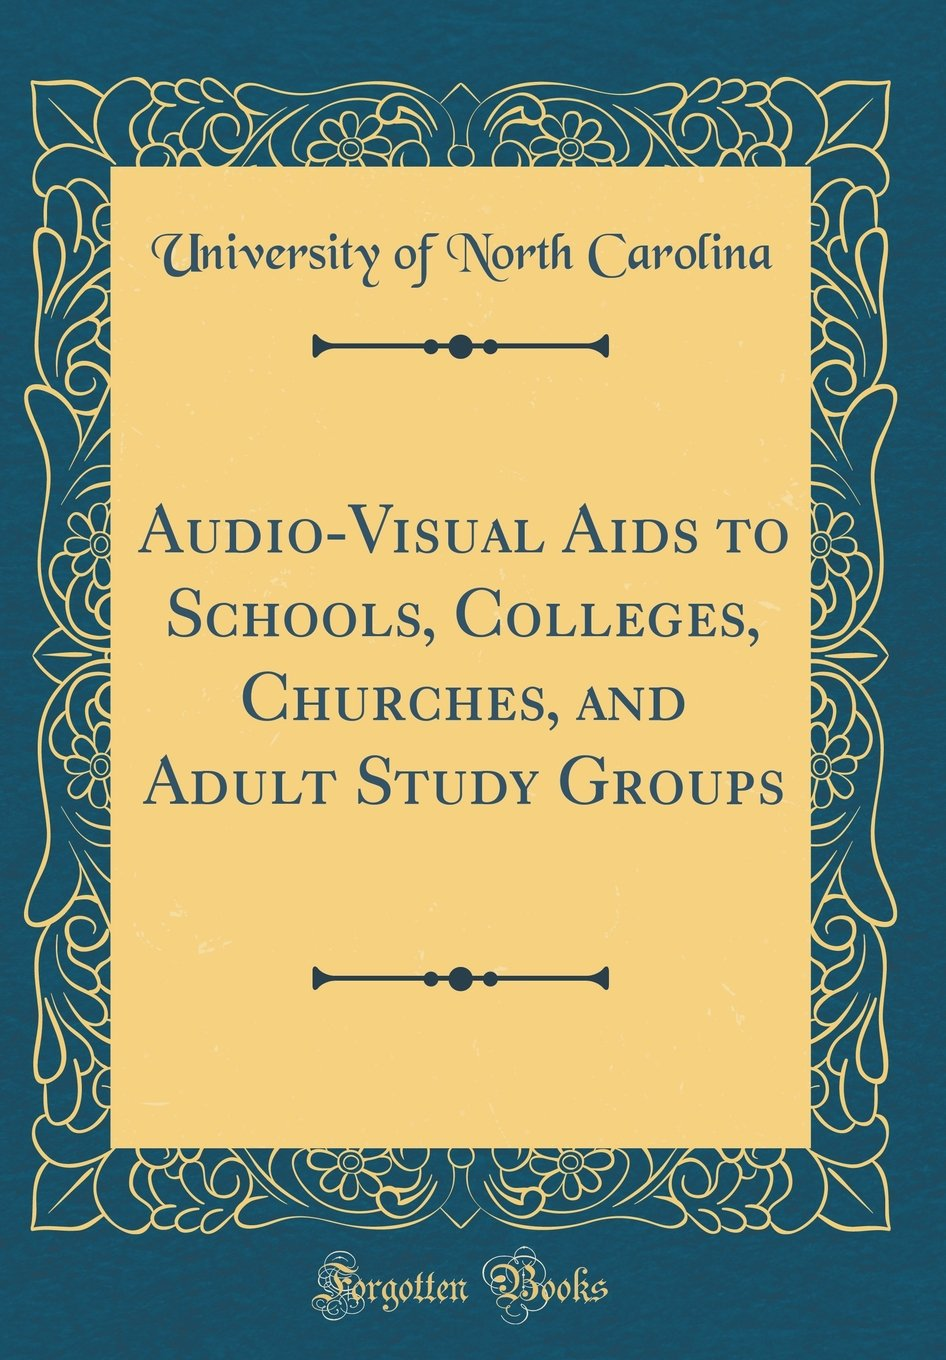 Audio-Visual AIDS to Schools, Colleges, Churches, and Adult Study Groups (Classic Reprint) by Forgotten Books